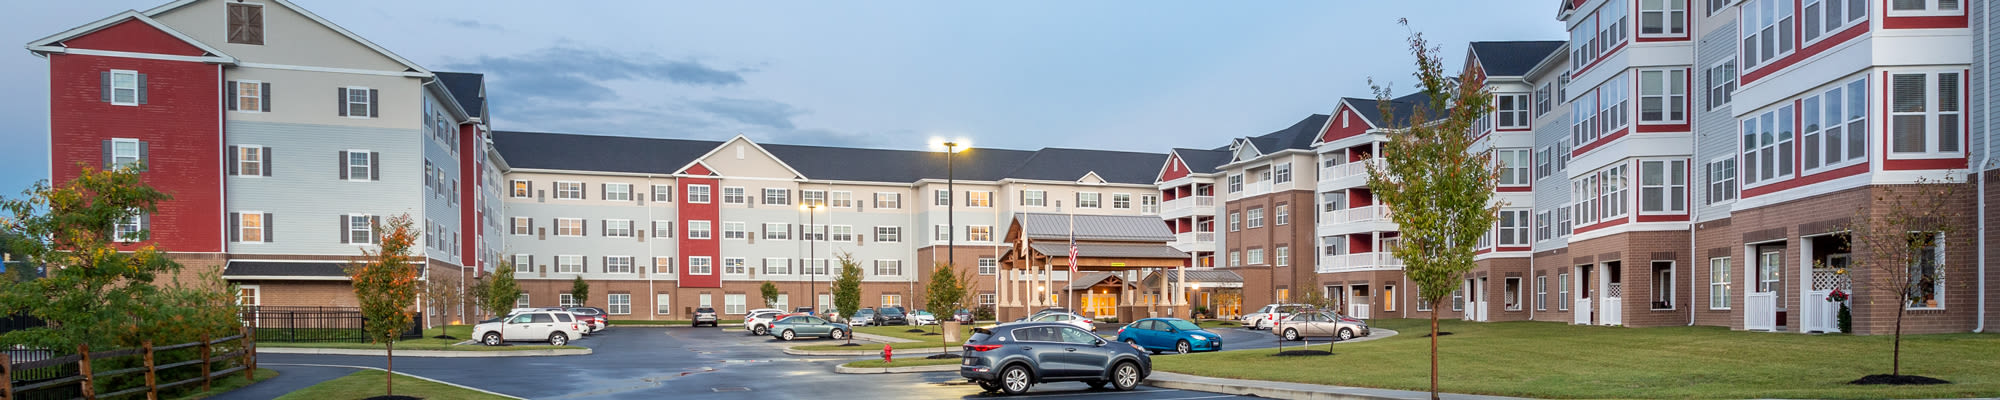 News at Harmony at West Shore in Mechanicsburg, Pennsylvania